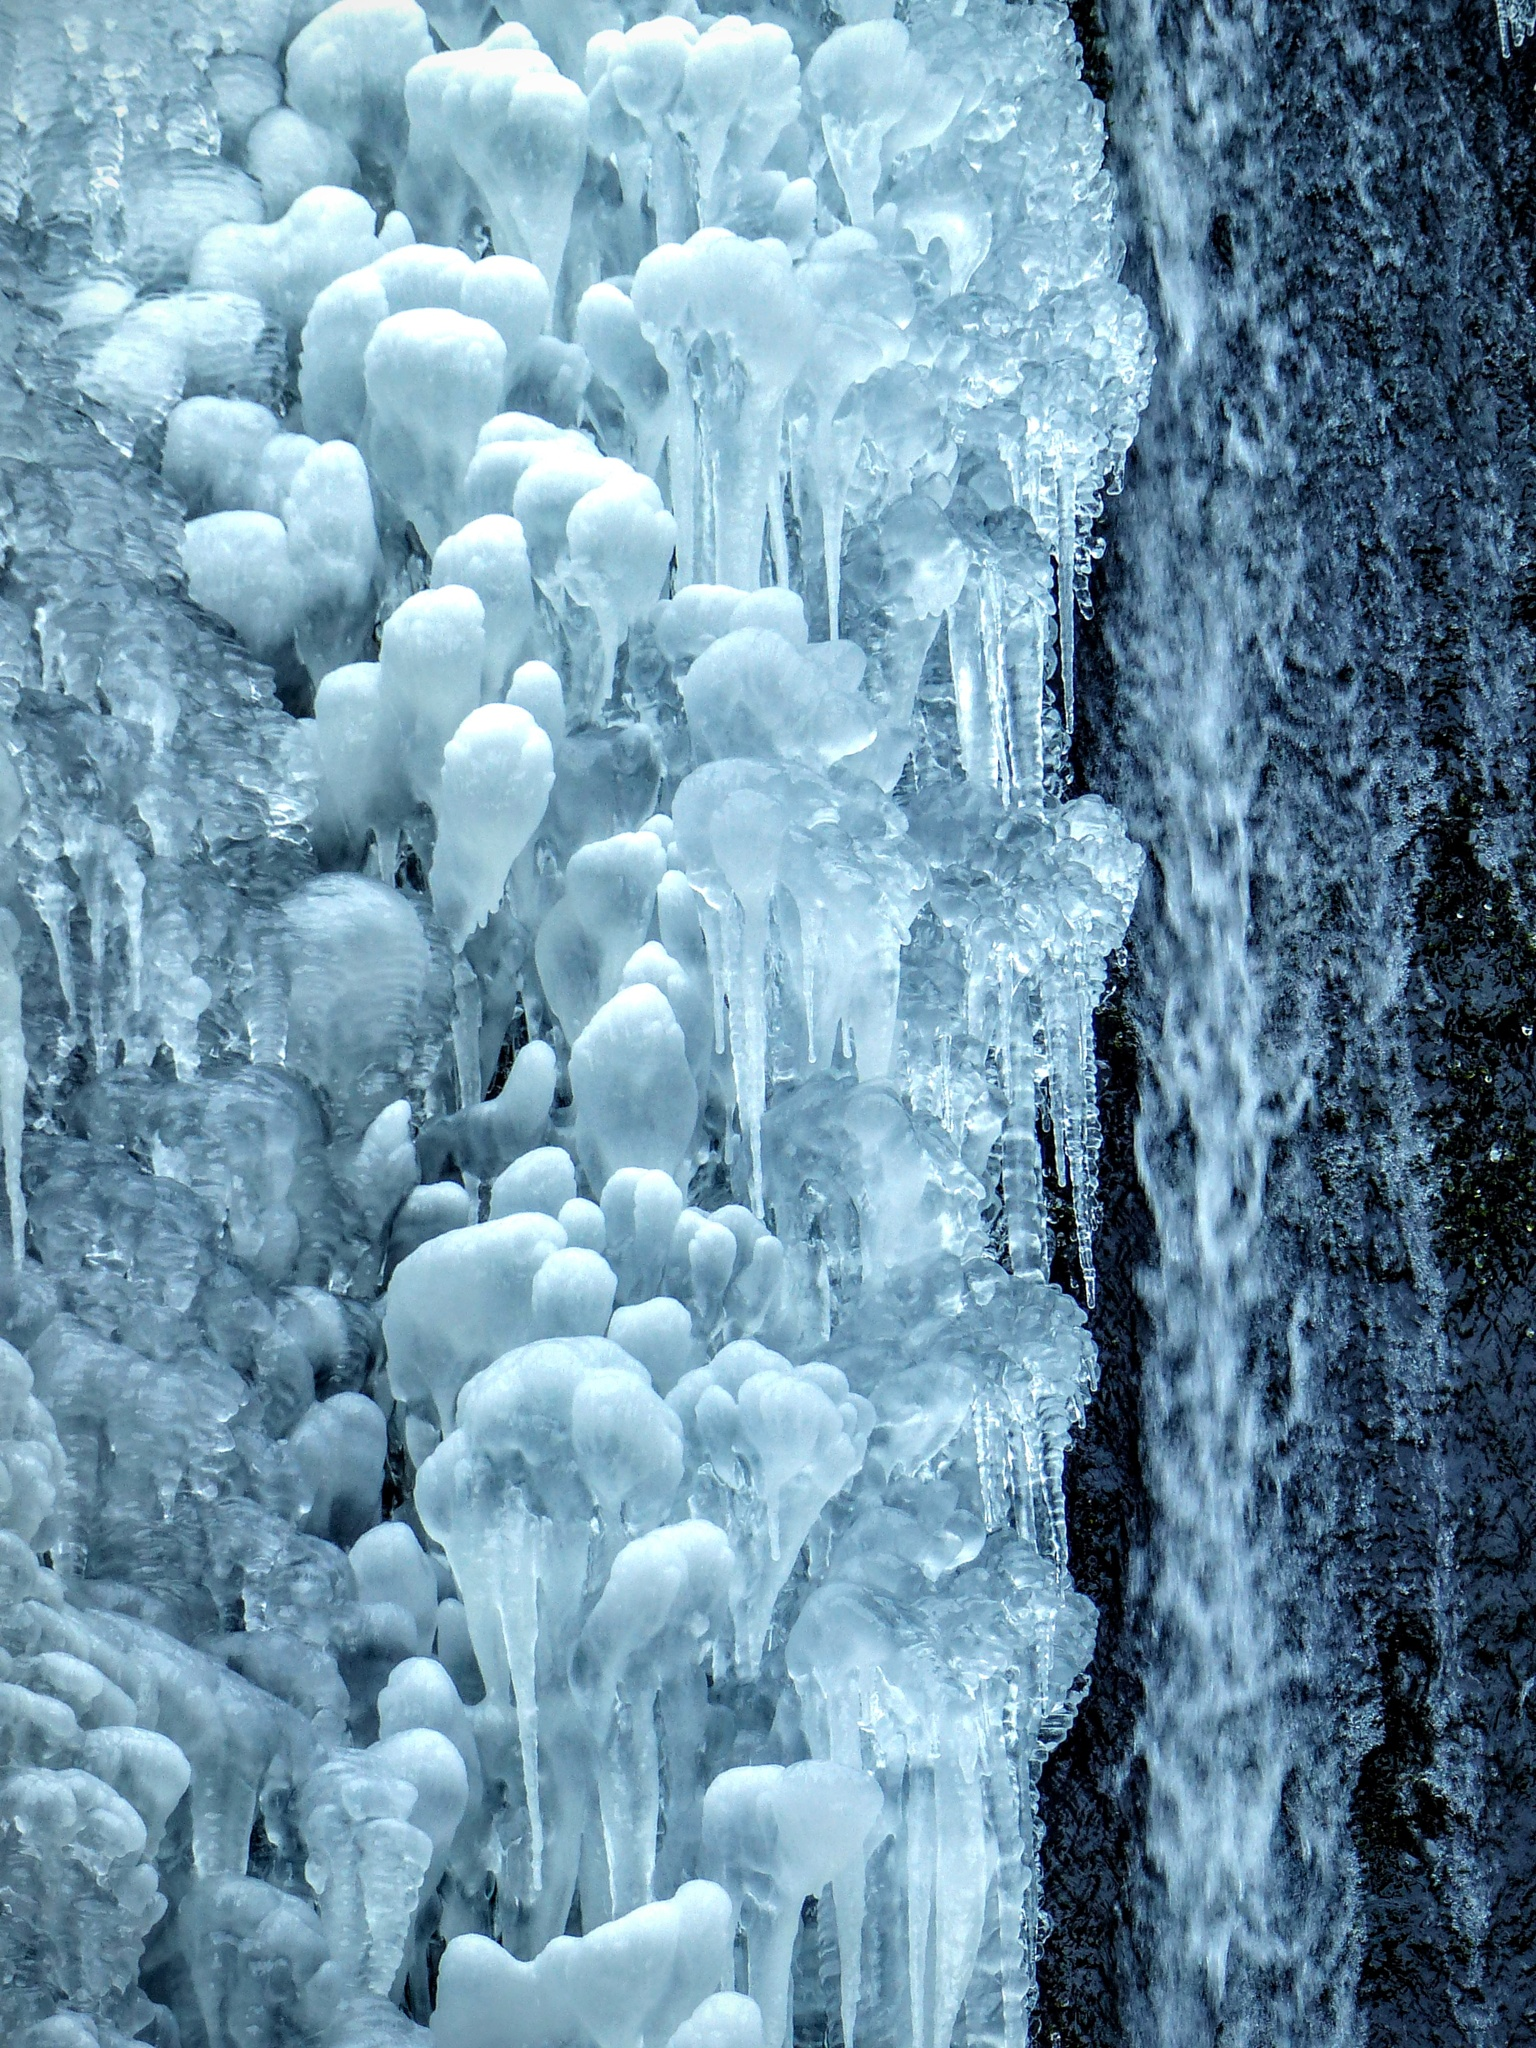 Frozen Waterfall 3 by emalfni